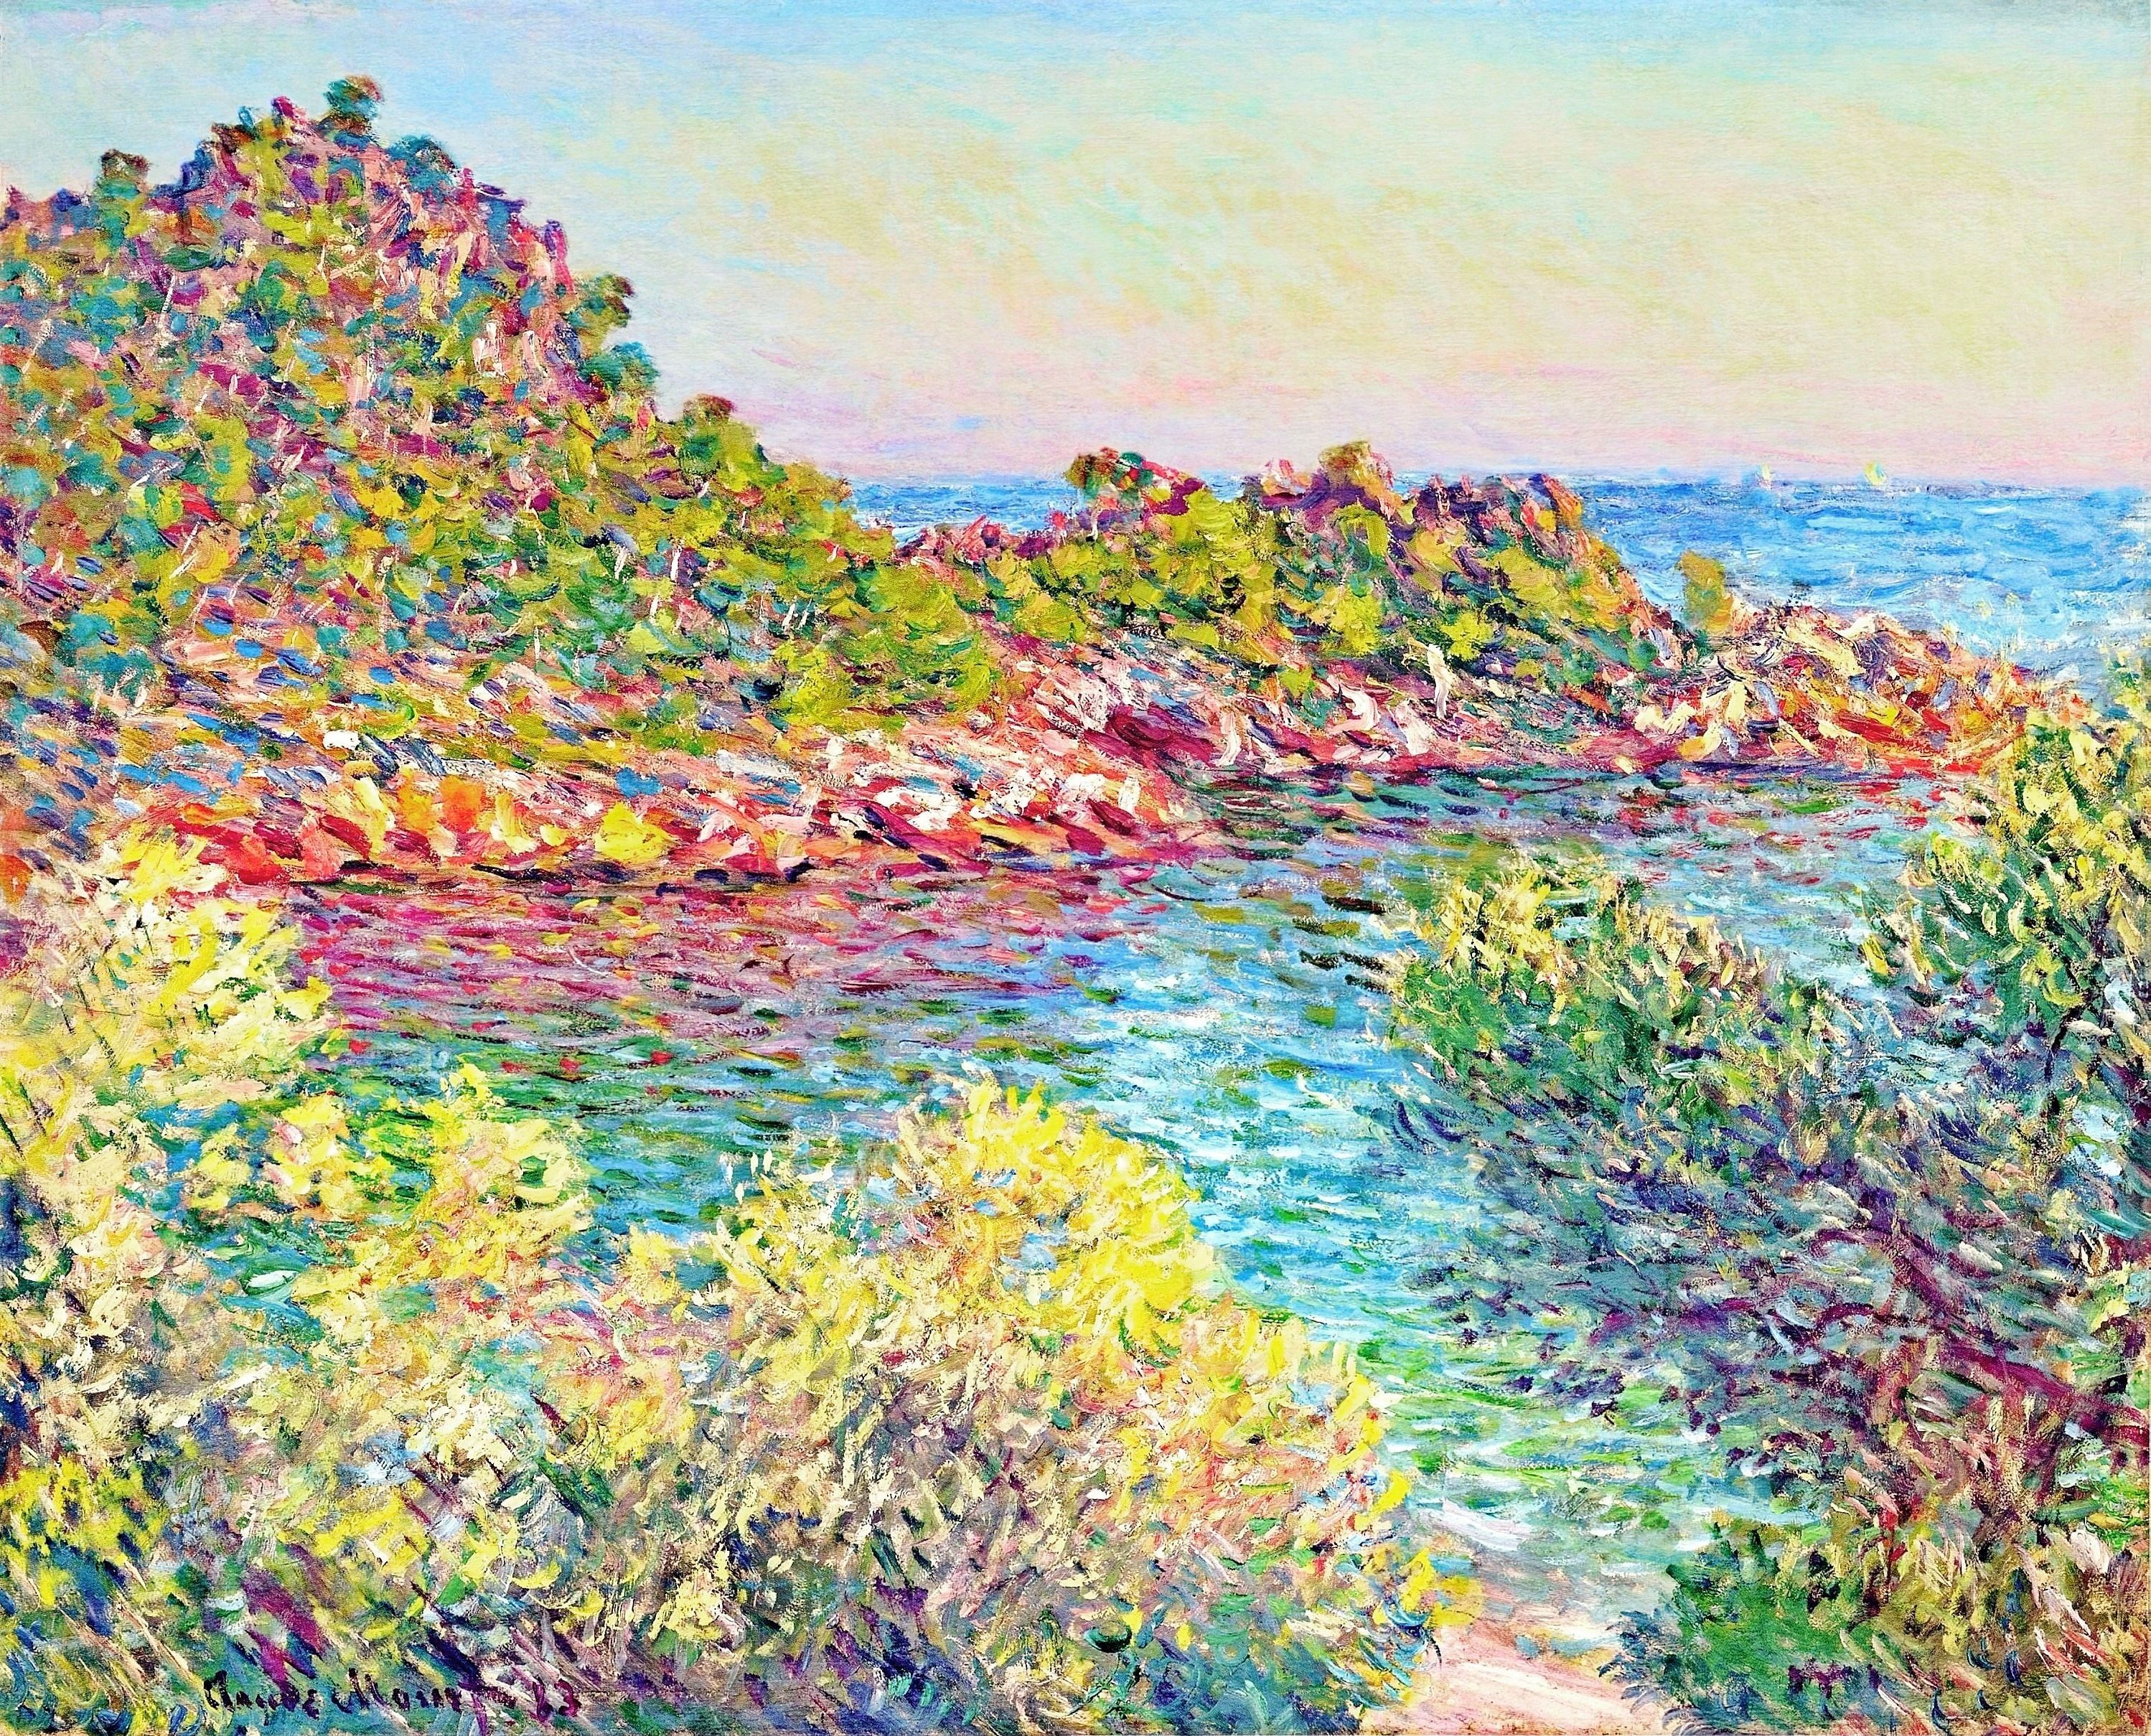 How many paintings did Claude Monet paint?